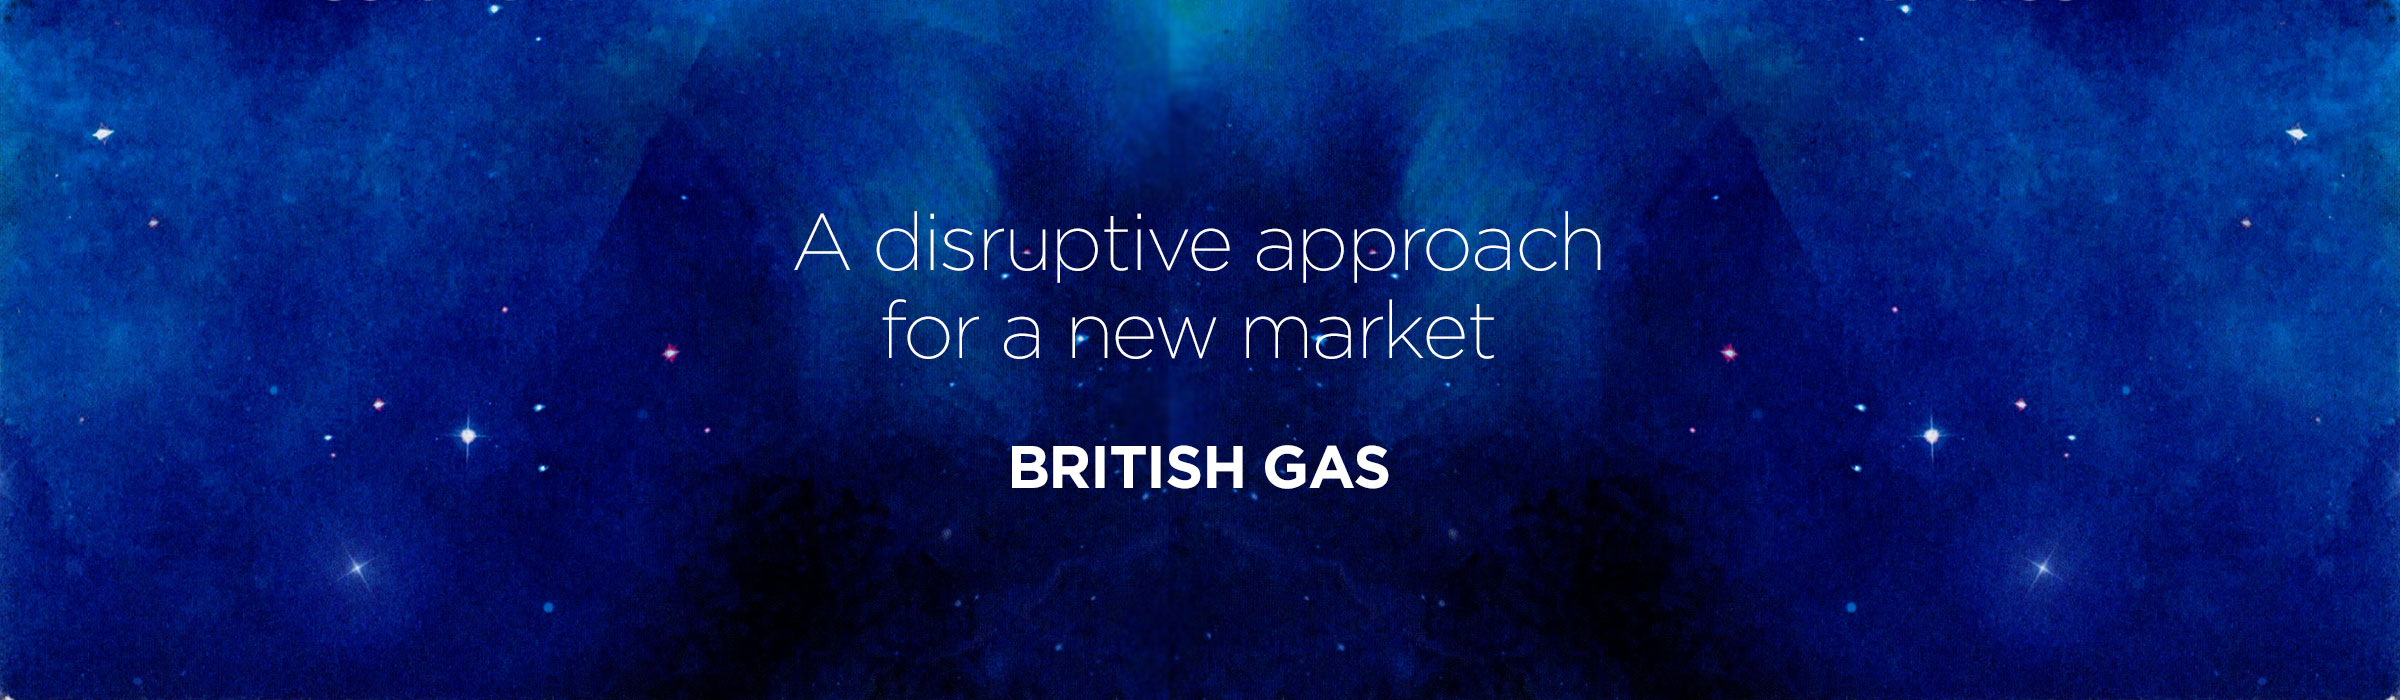 British Gas – A disruptive approach for a new market